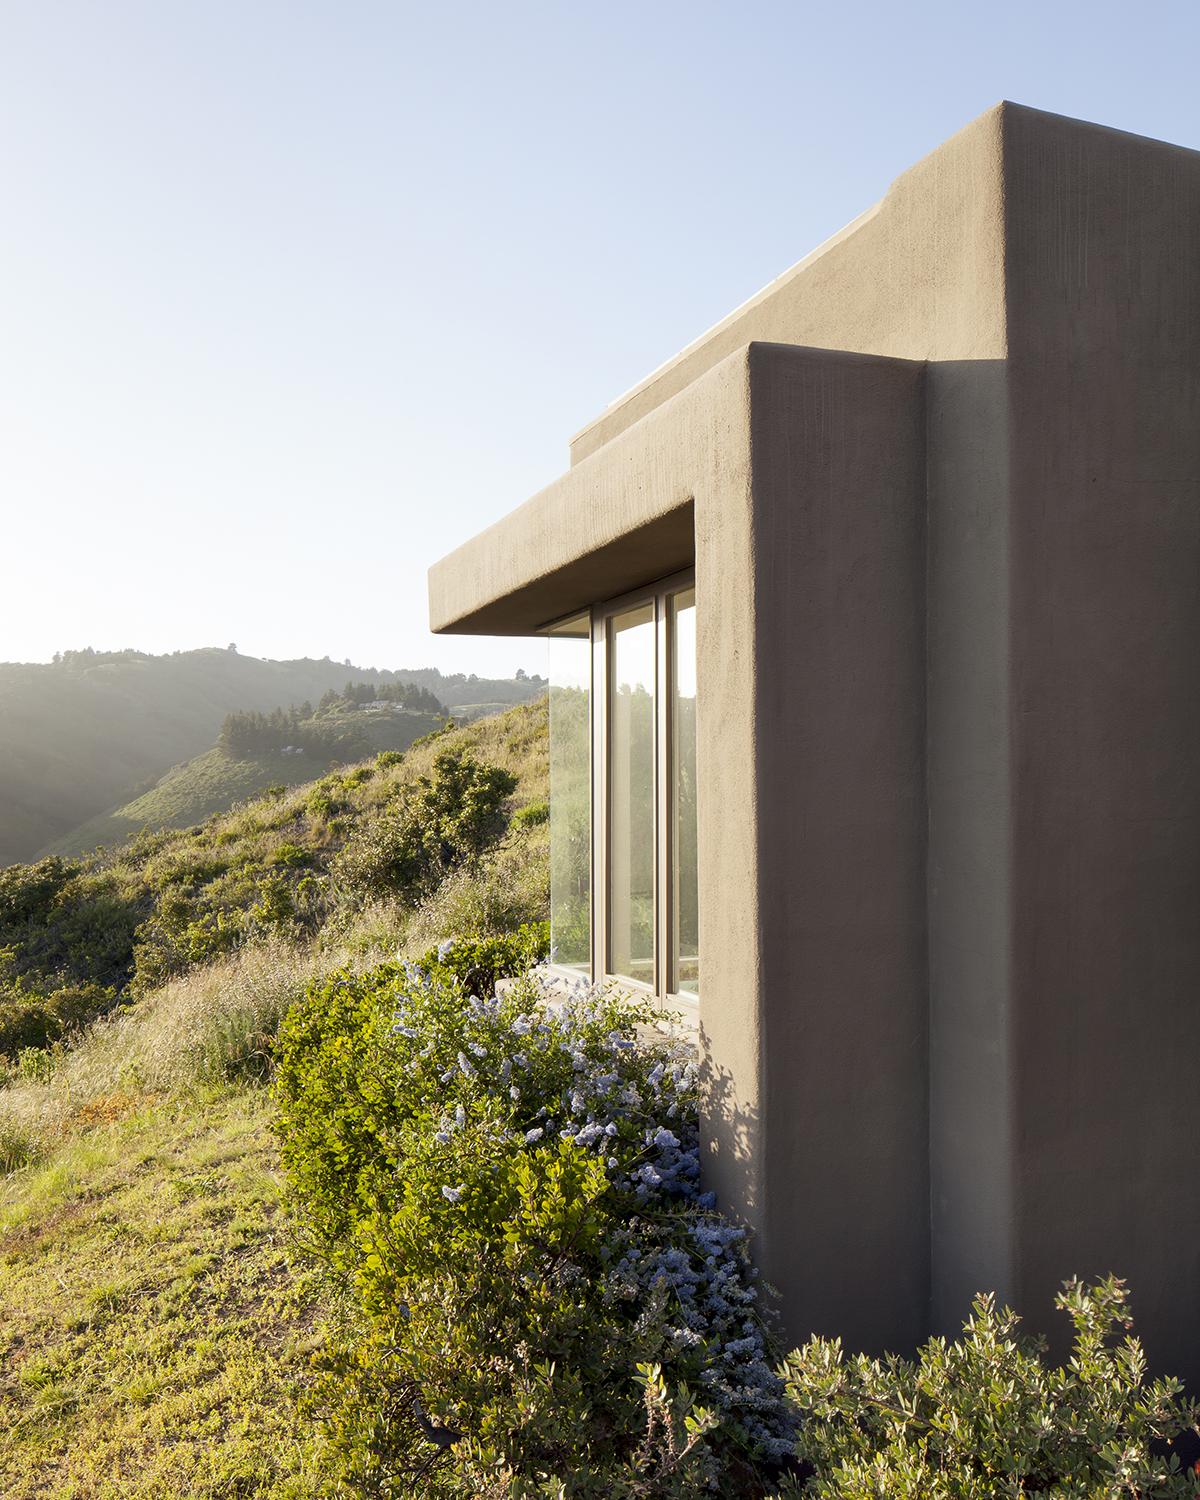 Big Sur House by architect George Brooke Kathlow